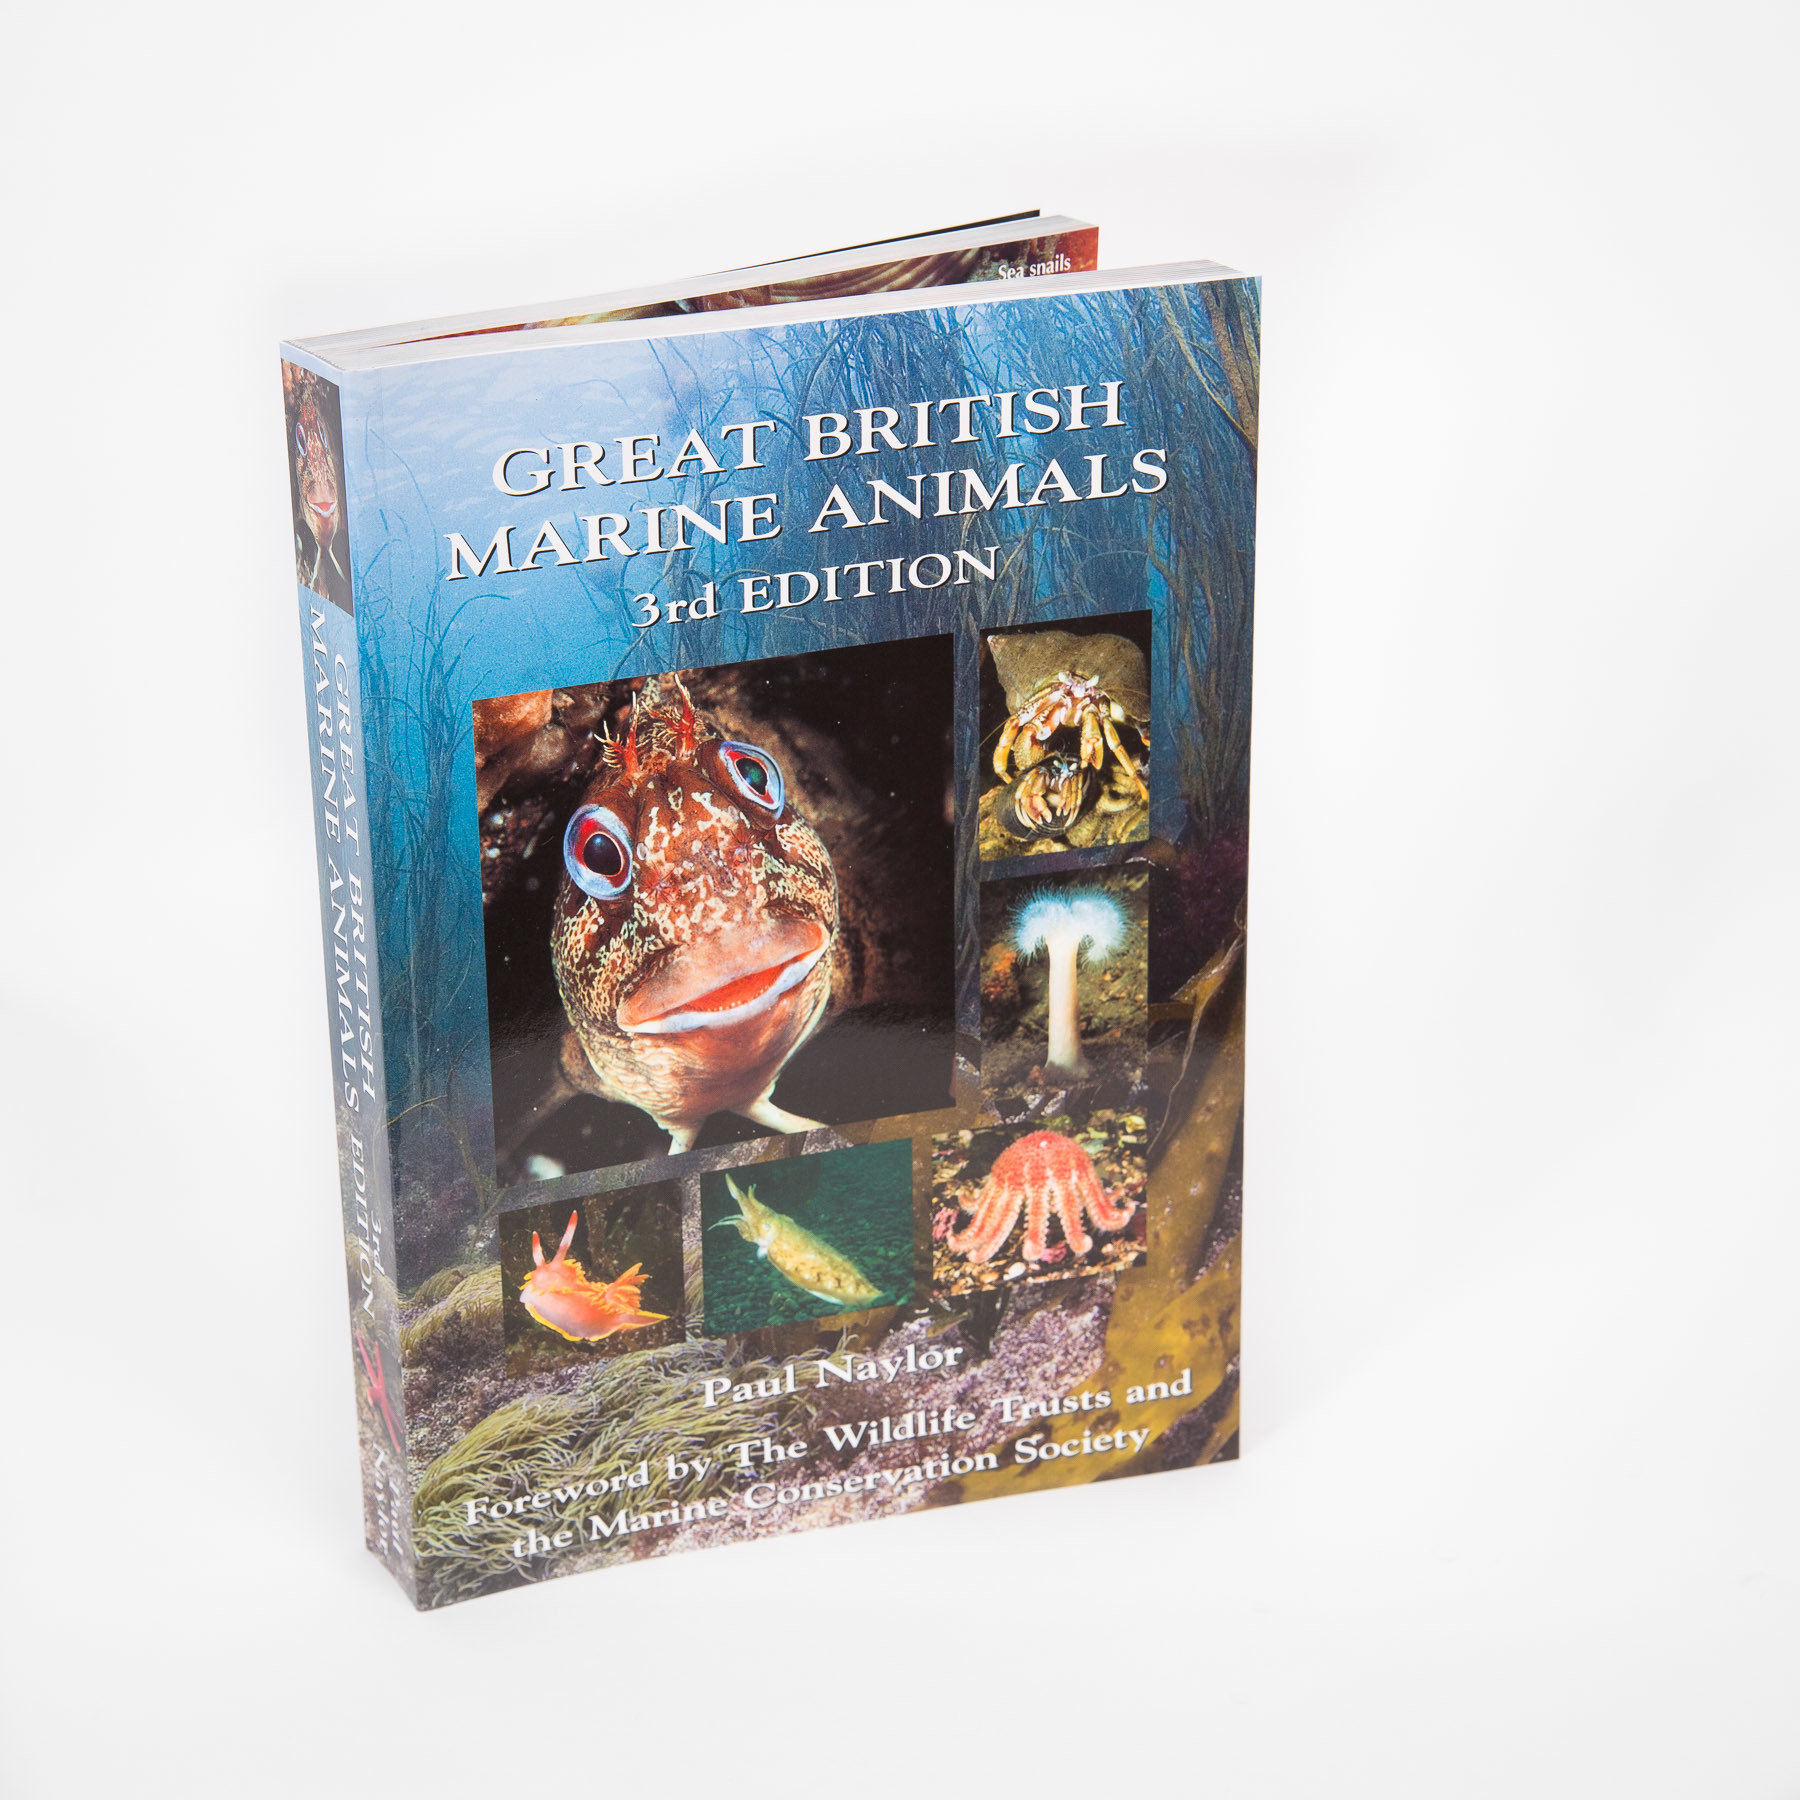 Great British Marine Animals 3rd Edition 00193